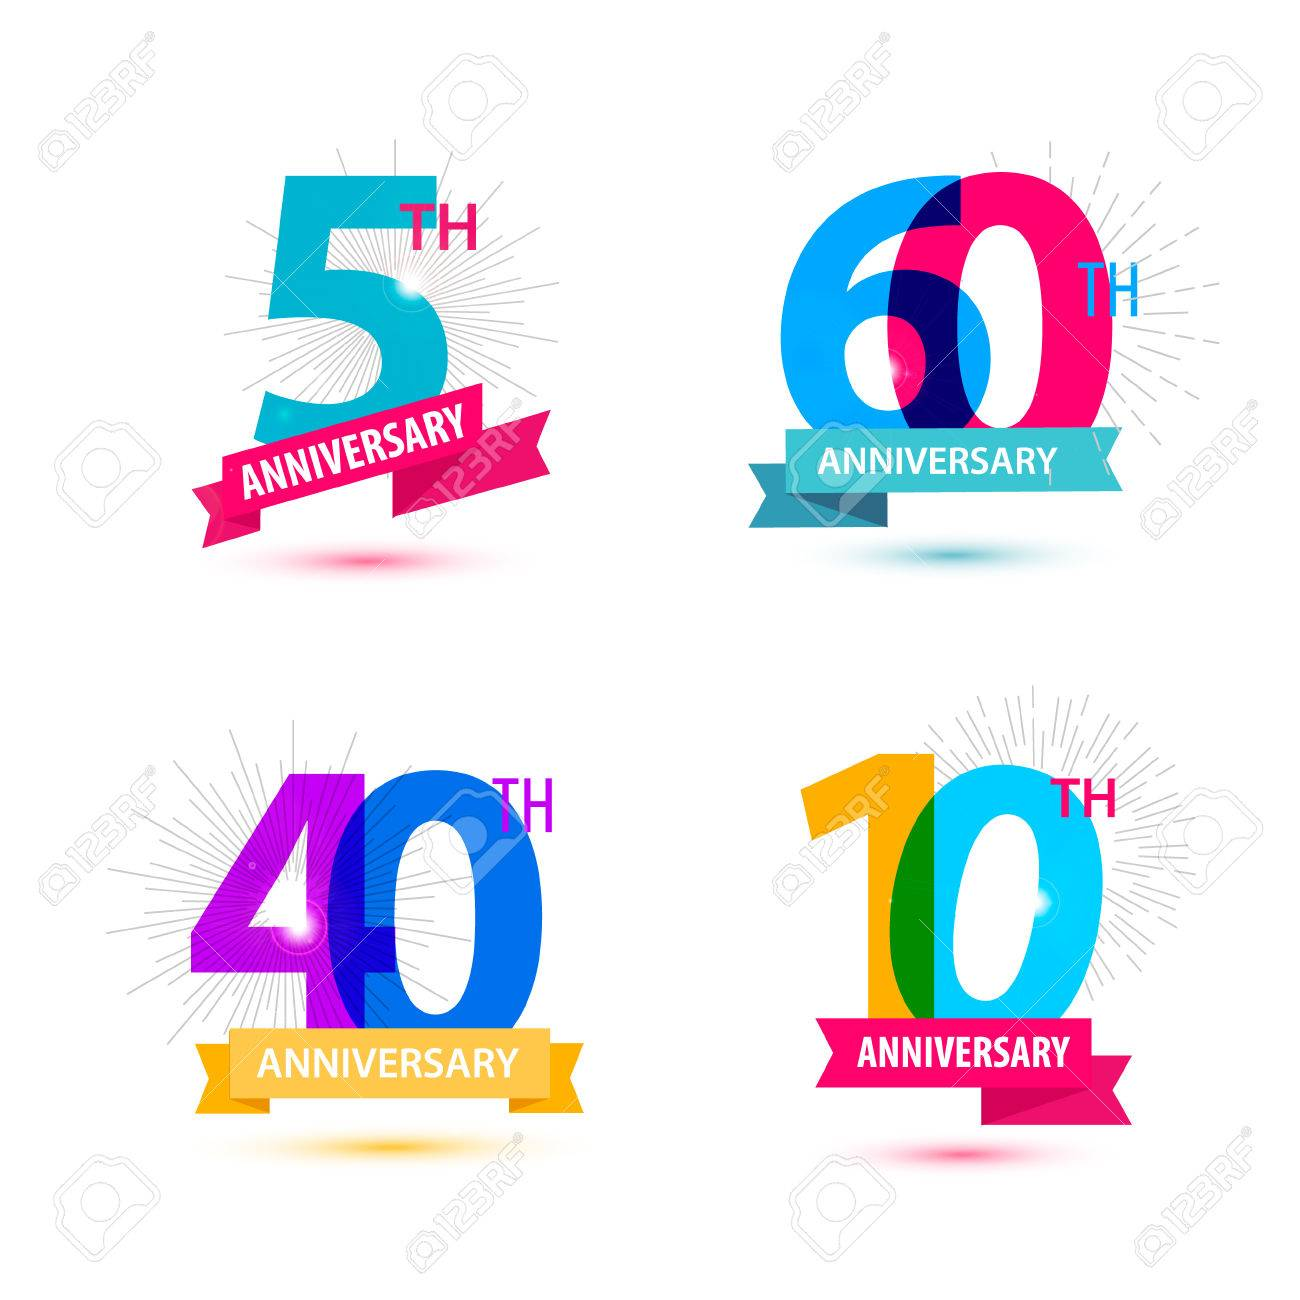 Vector set of anniversary numbers design. 5, 60, 40, 10 icons, compositions with ribbons. Colorful, transparent with shadows on white background isolated - 52738175